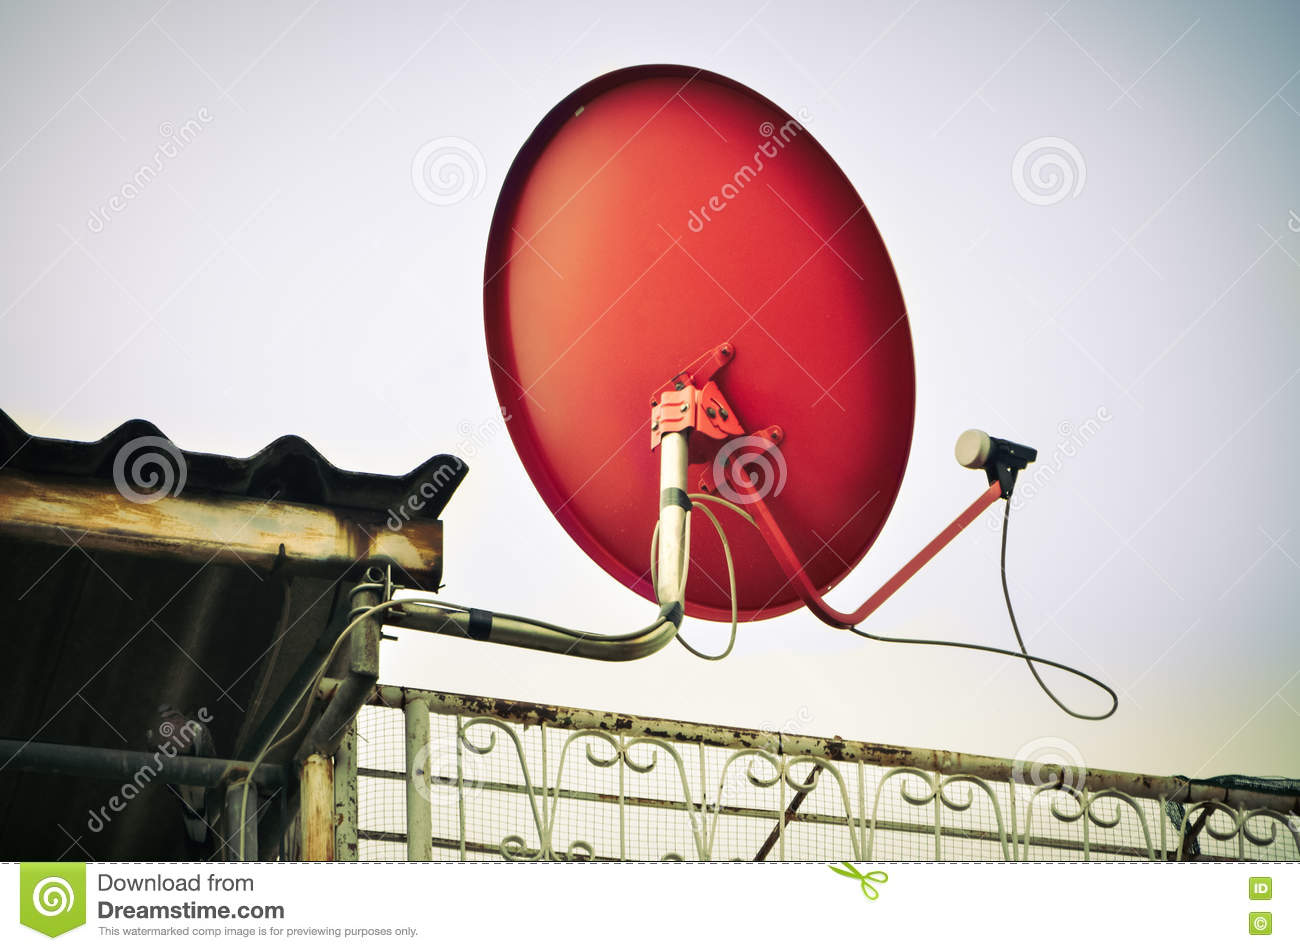 Download Ed Dish Satellite Receiver With Blue Sky Stock Image - Image of signal, equipment: 72241889